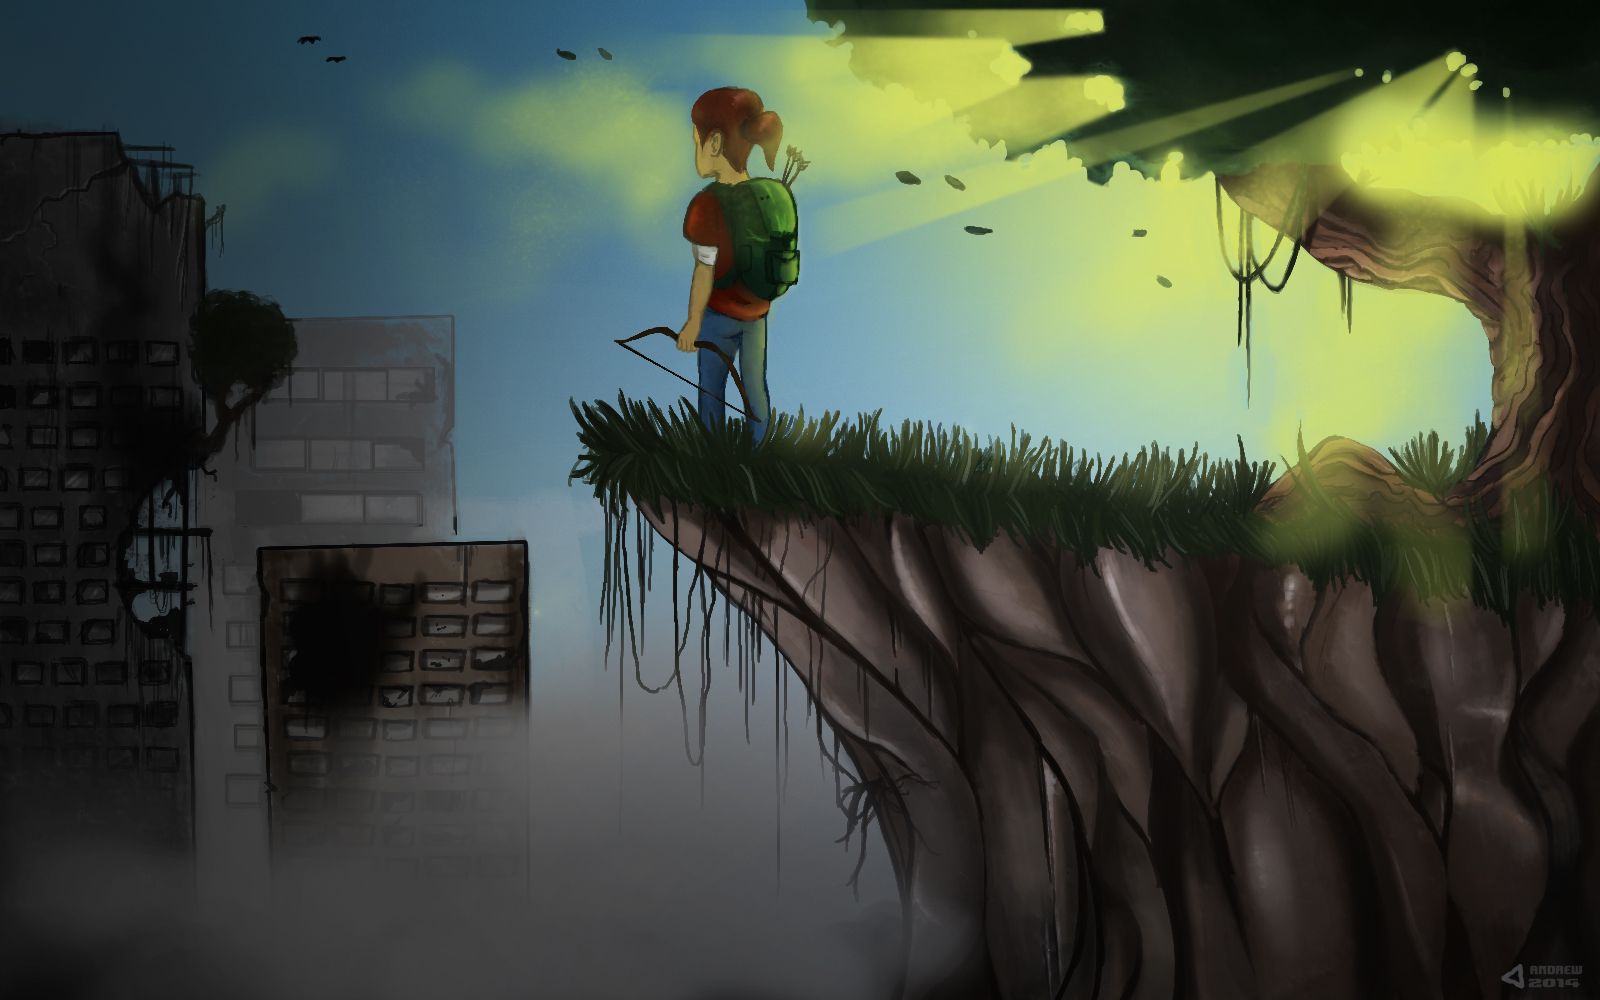 The Last Of Us (painting)